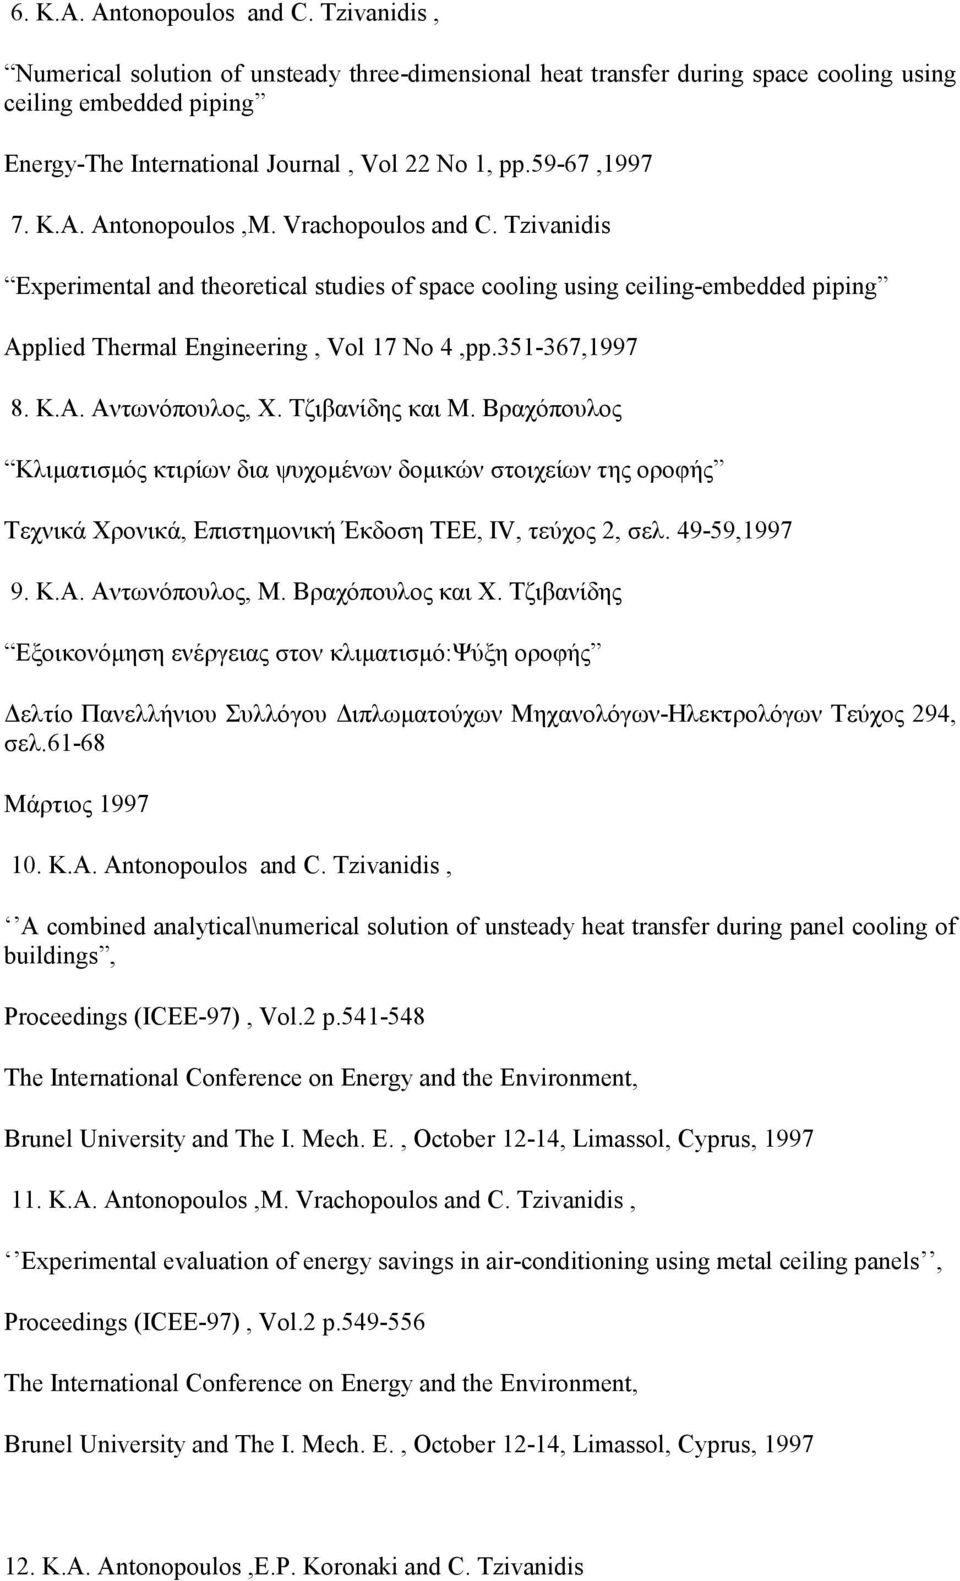 Antonopoulos,M. Vrachopoulos and C. Tzivanidis Experimental and theoretical studies of space cooling using ceiling-embedded piping Applied Thermal Engineering, Vol 17 No 4,pp.351-367,1997 8. K.A. Αντωνόπουλος, Χ.